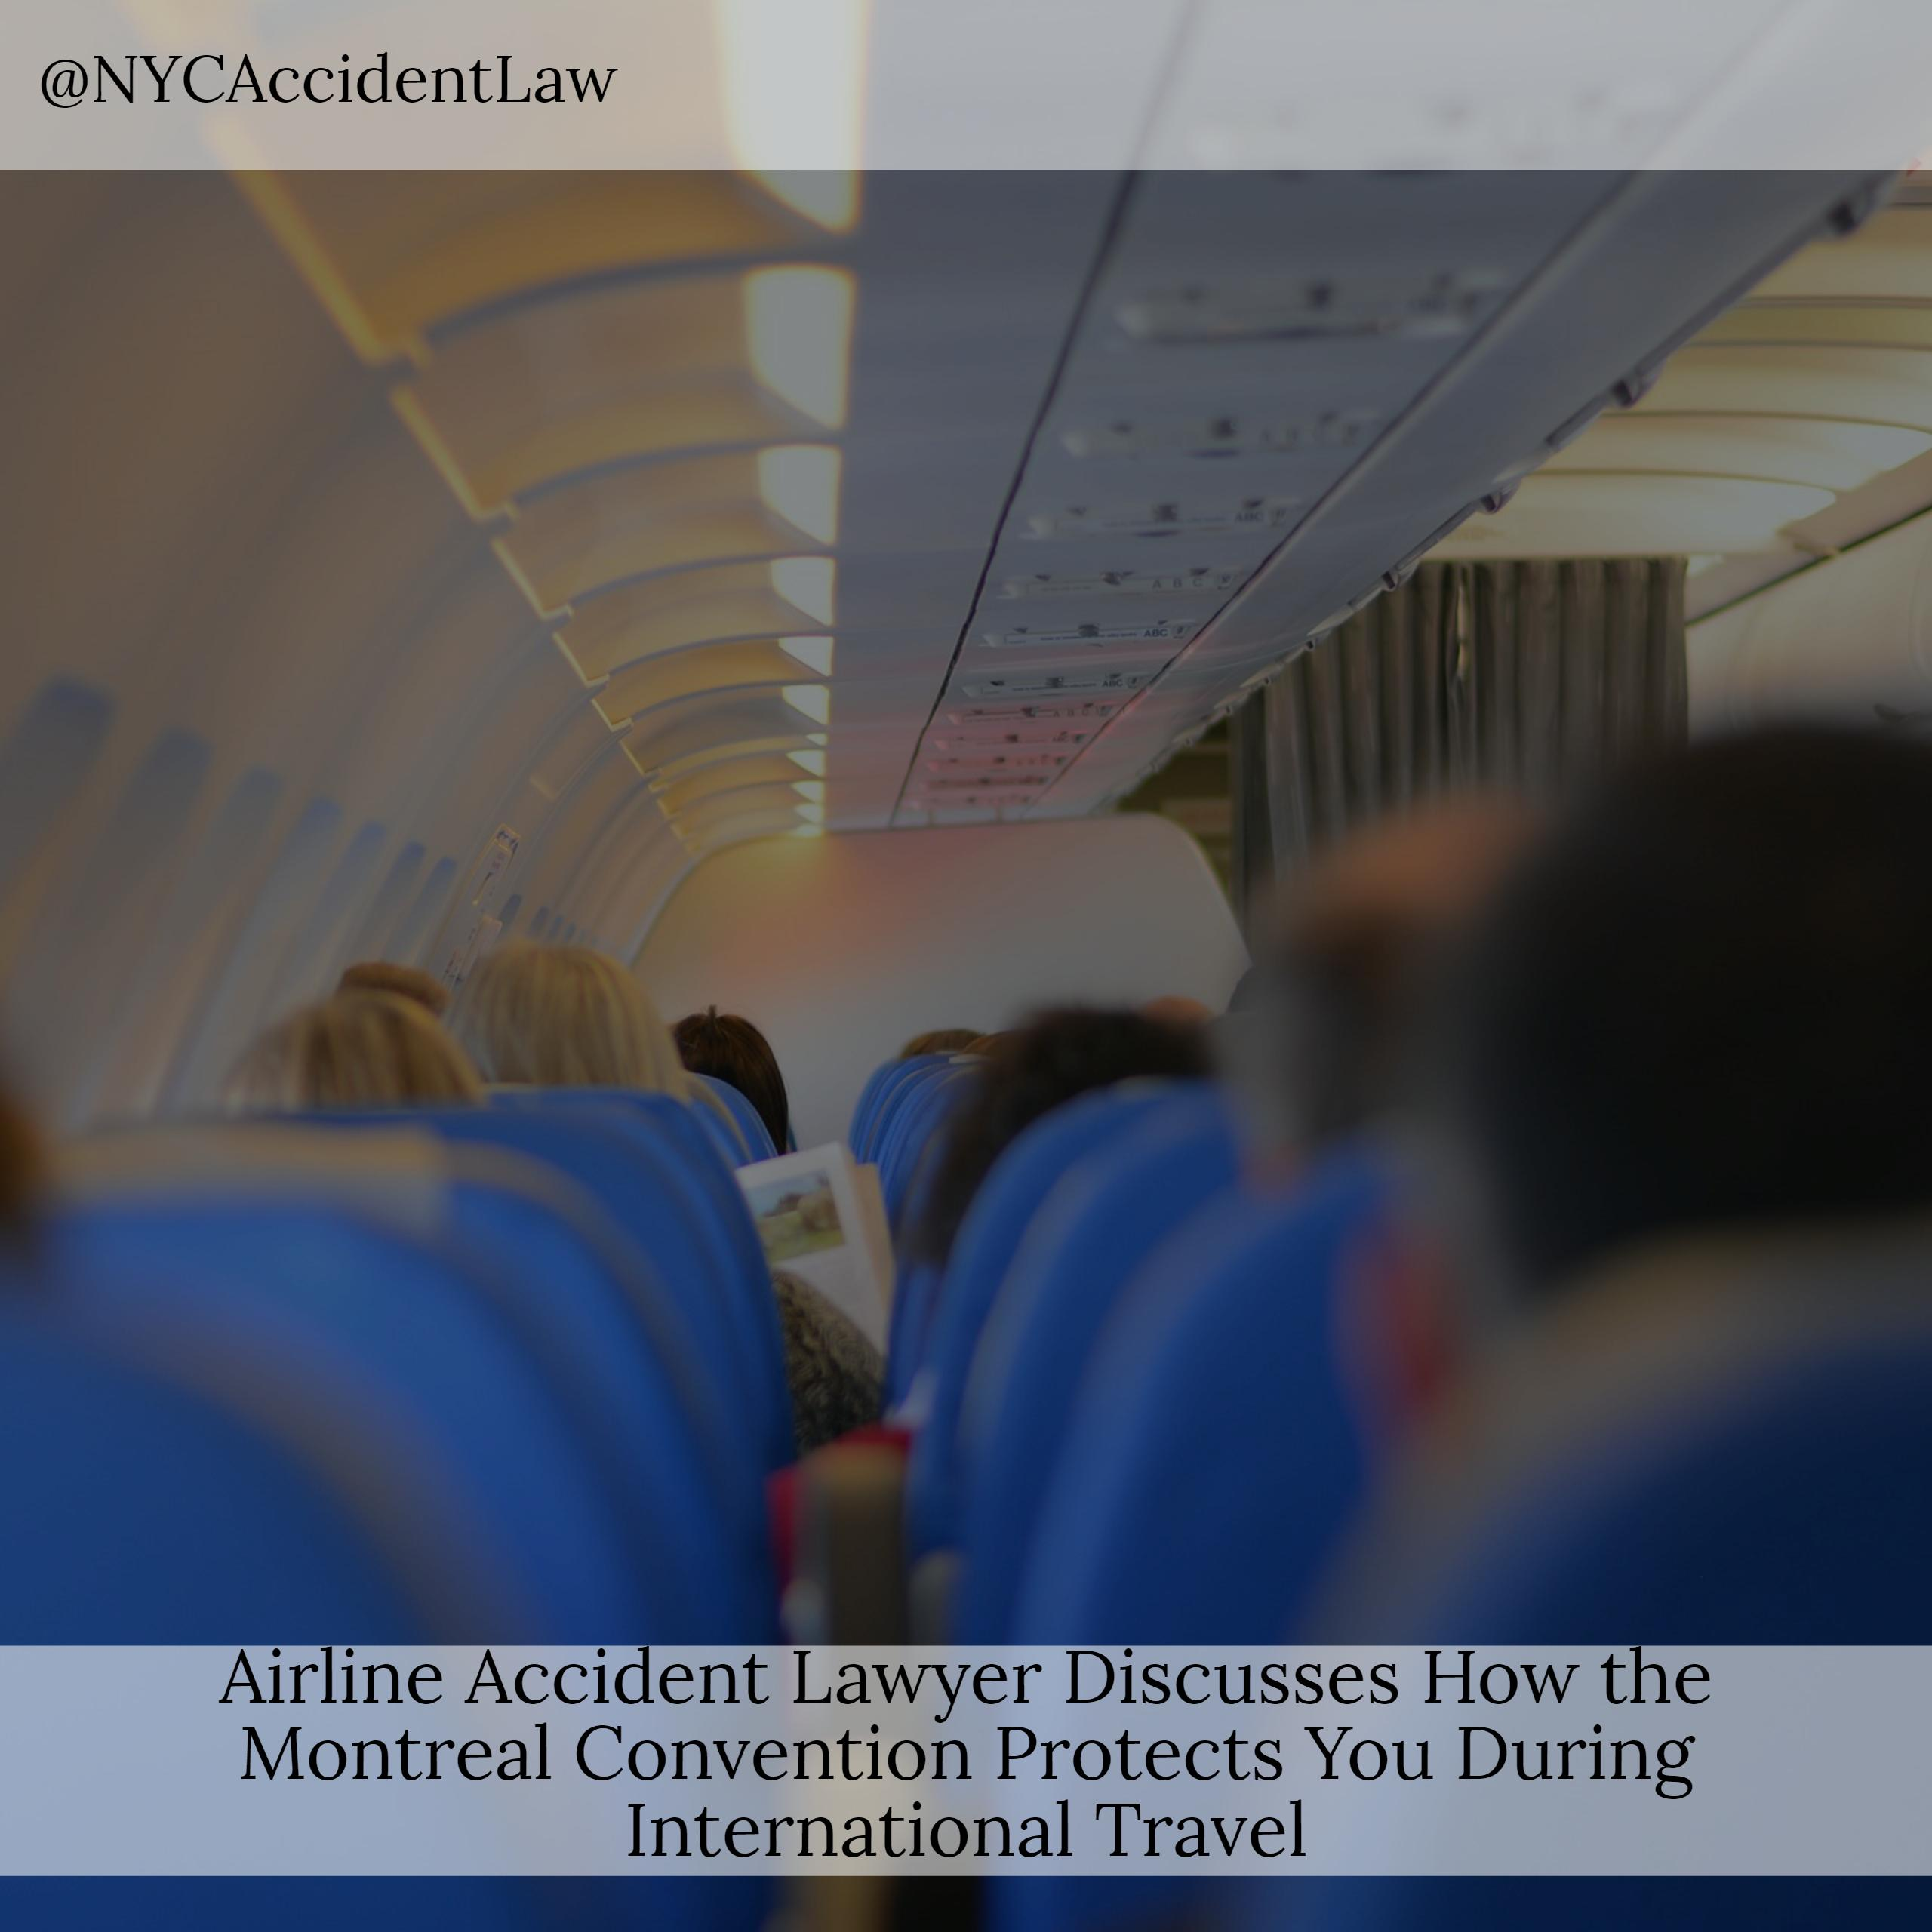 Airline Accident Lawyer Discusses How the Montreal Convention Protects You During International Travel